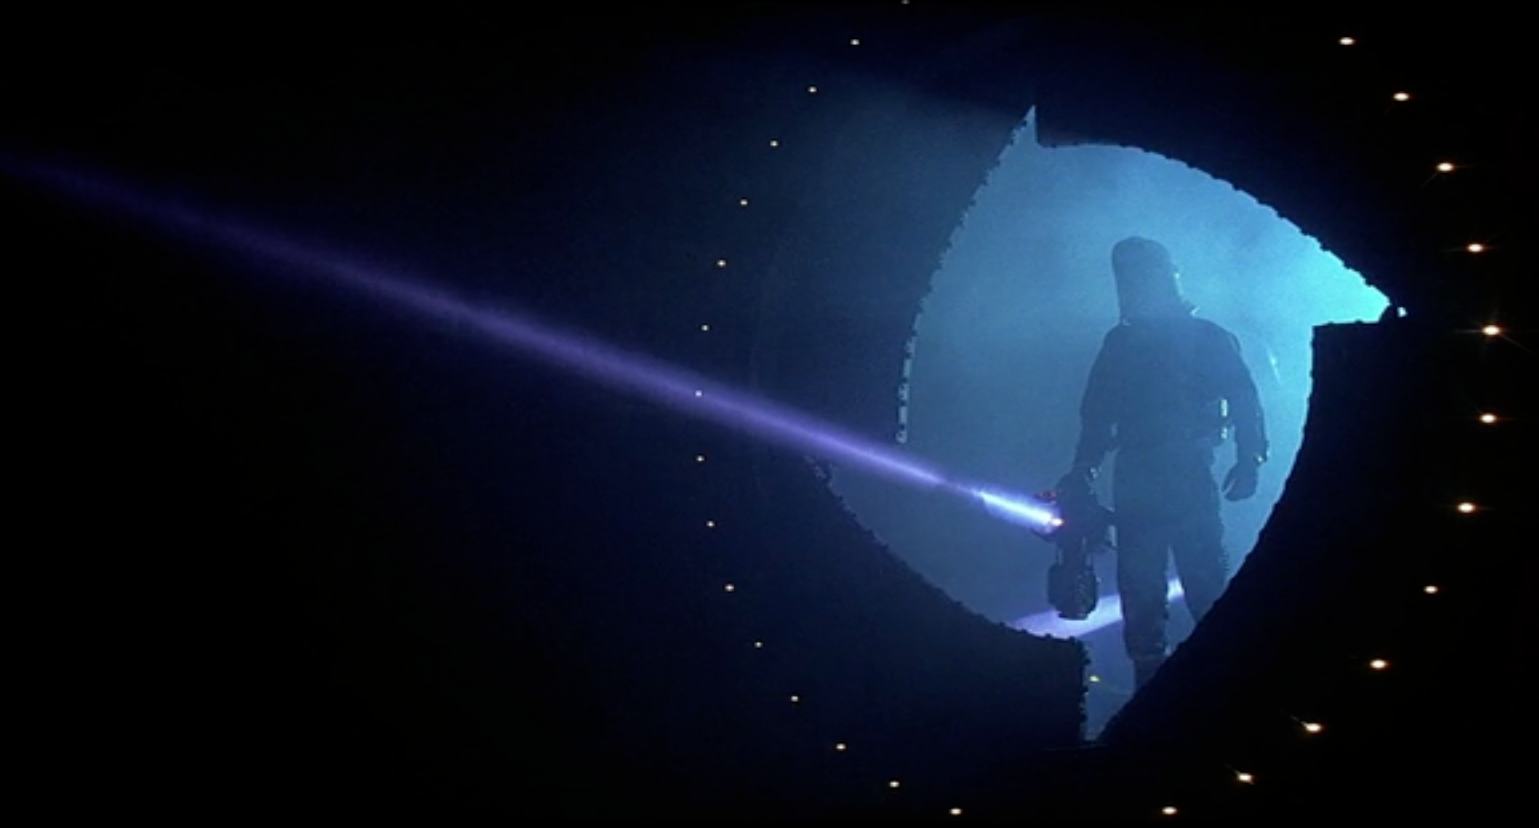 Still taken from the film Event Horizon.